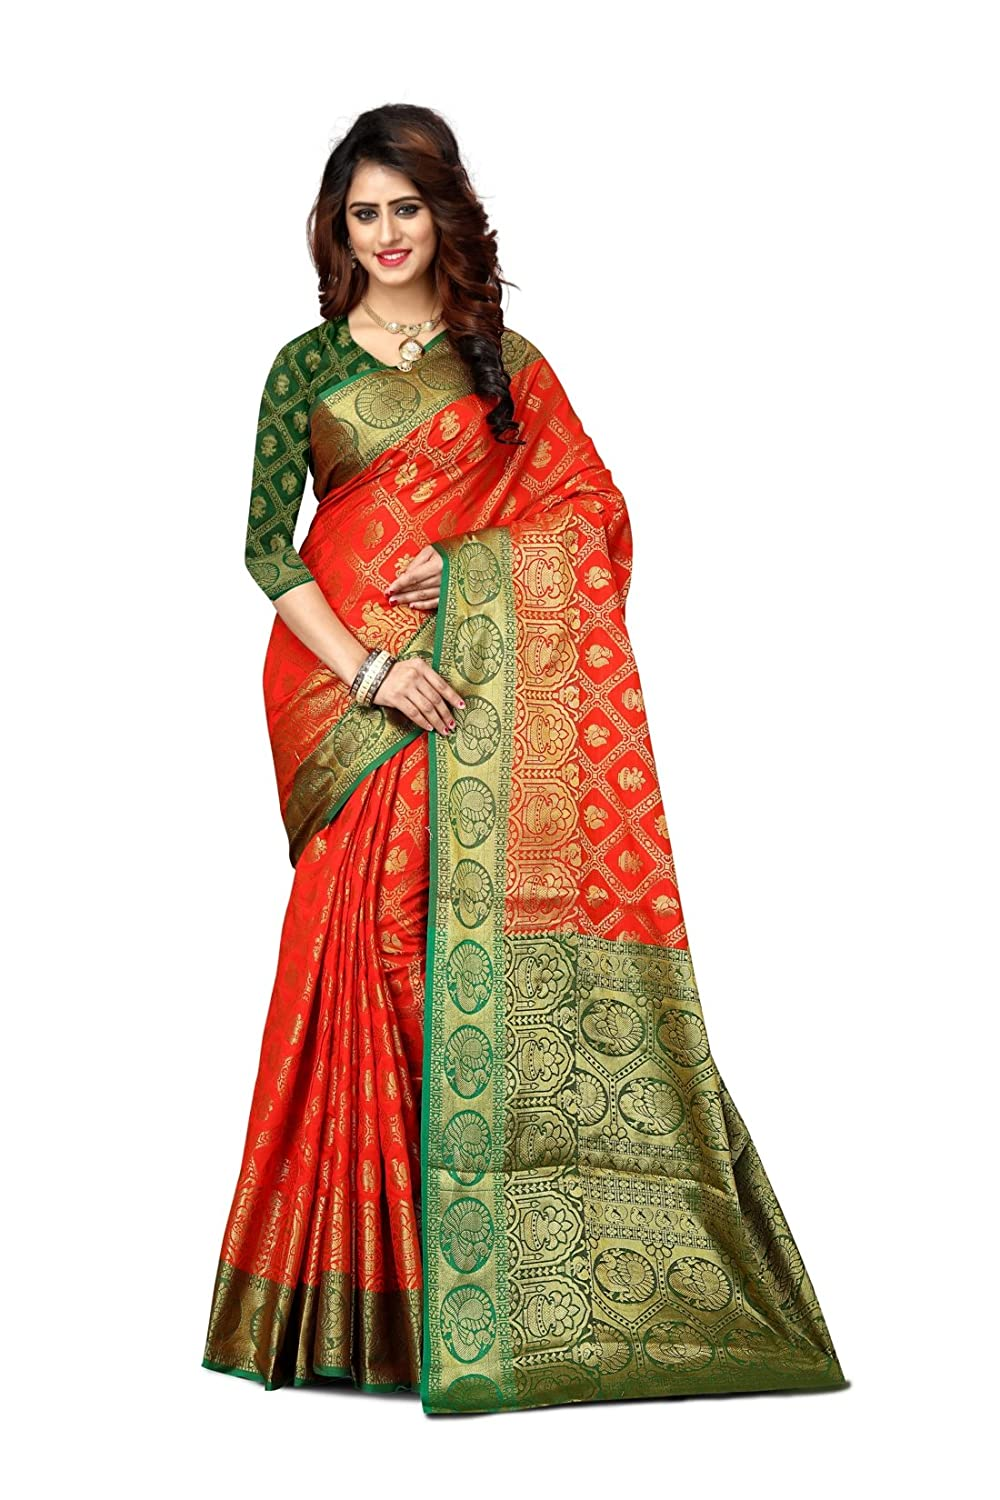 F4style Women's Designer Banarasi Silk Saree with Unstitched Blouse Piece